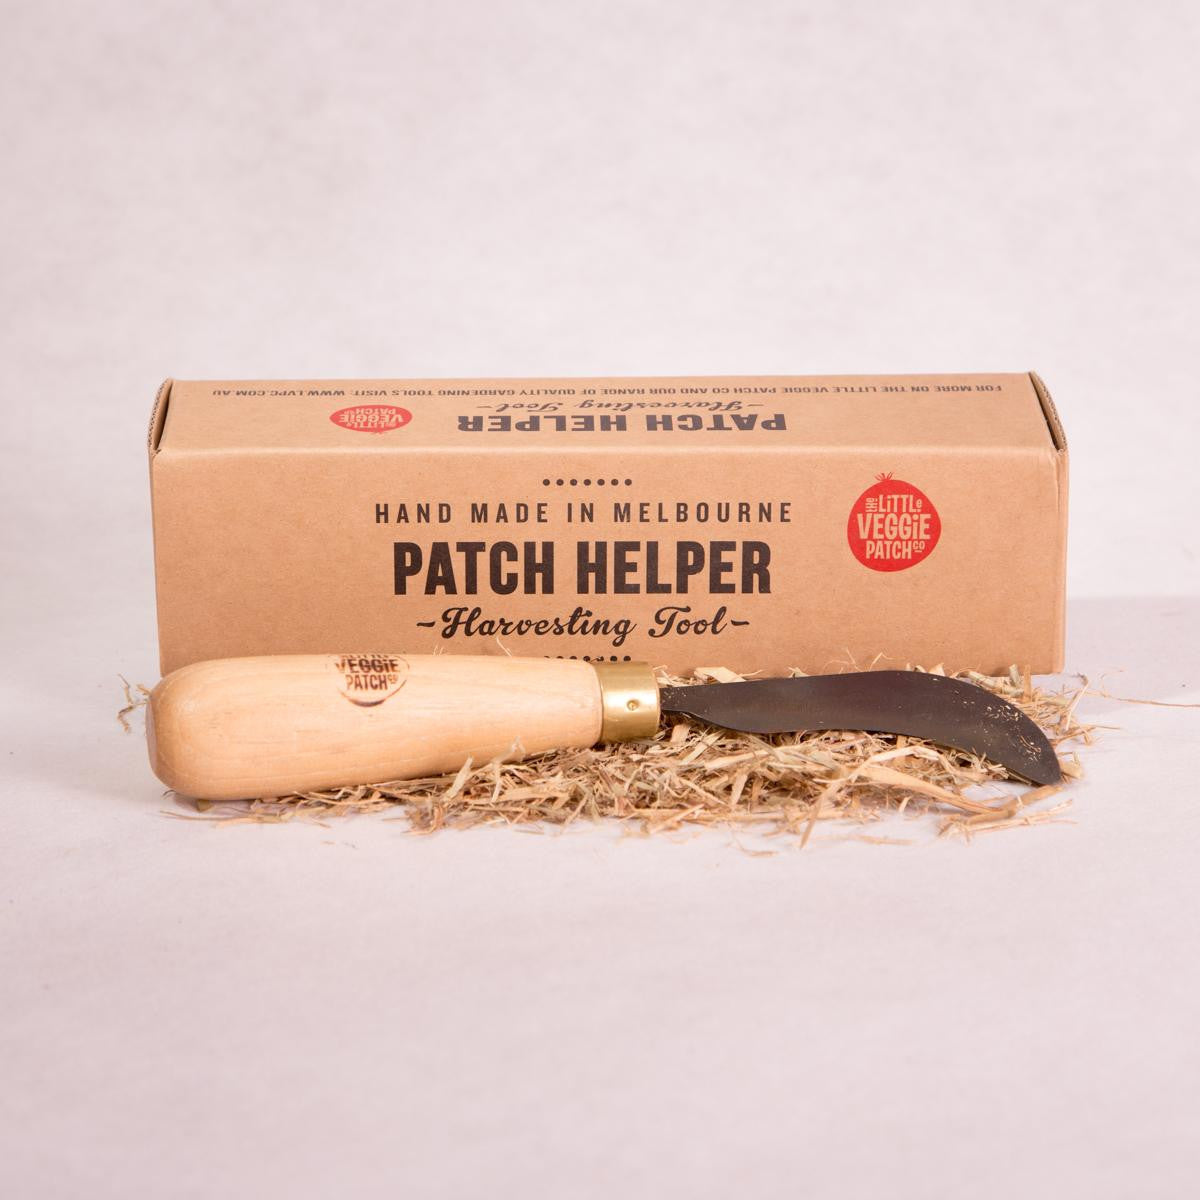 Patch Helper (Harvesting Tool) - Patch Helper - Throw Some Seeds - Australian gardening gifts and eco products online!